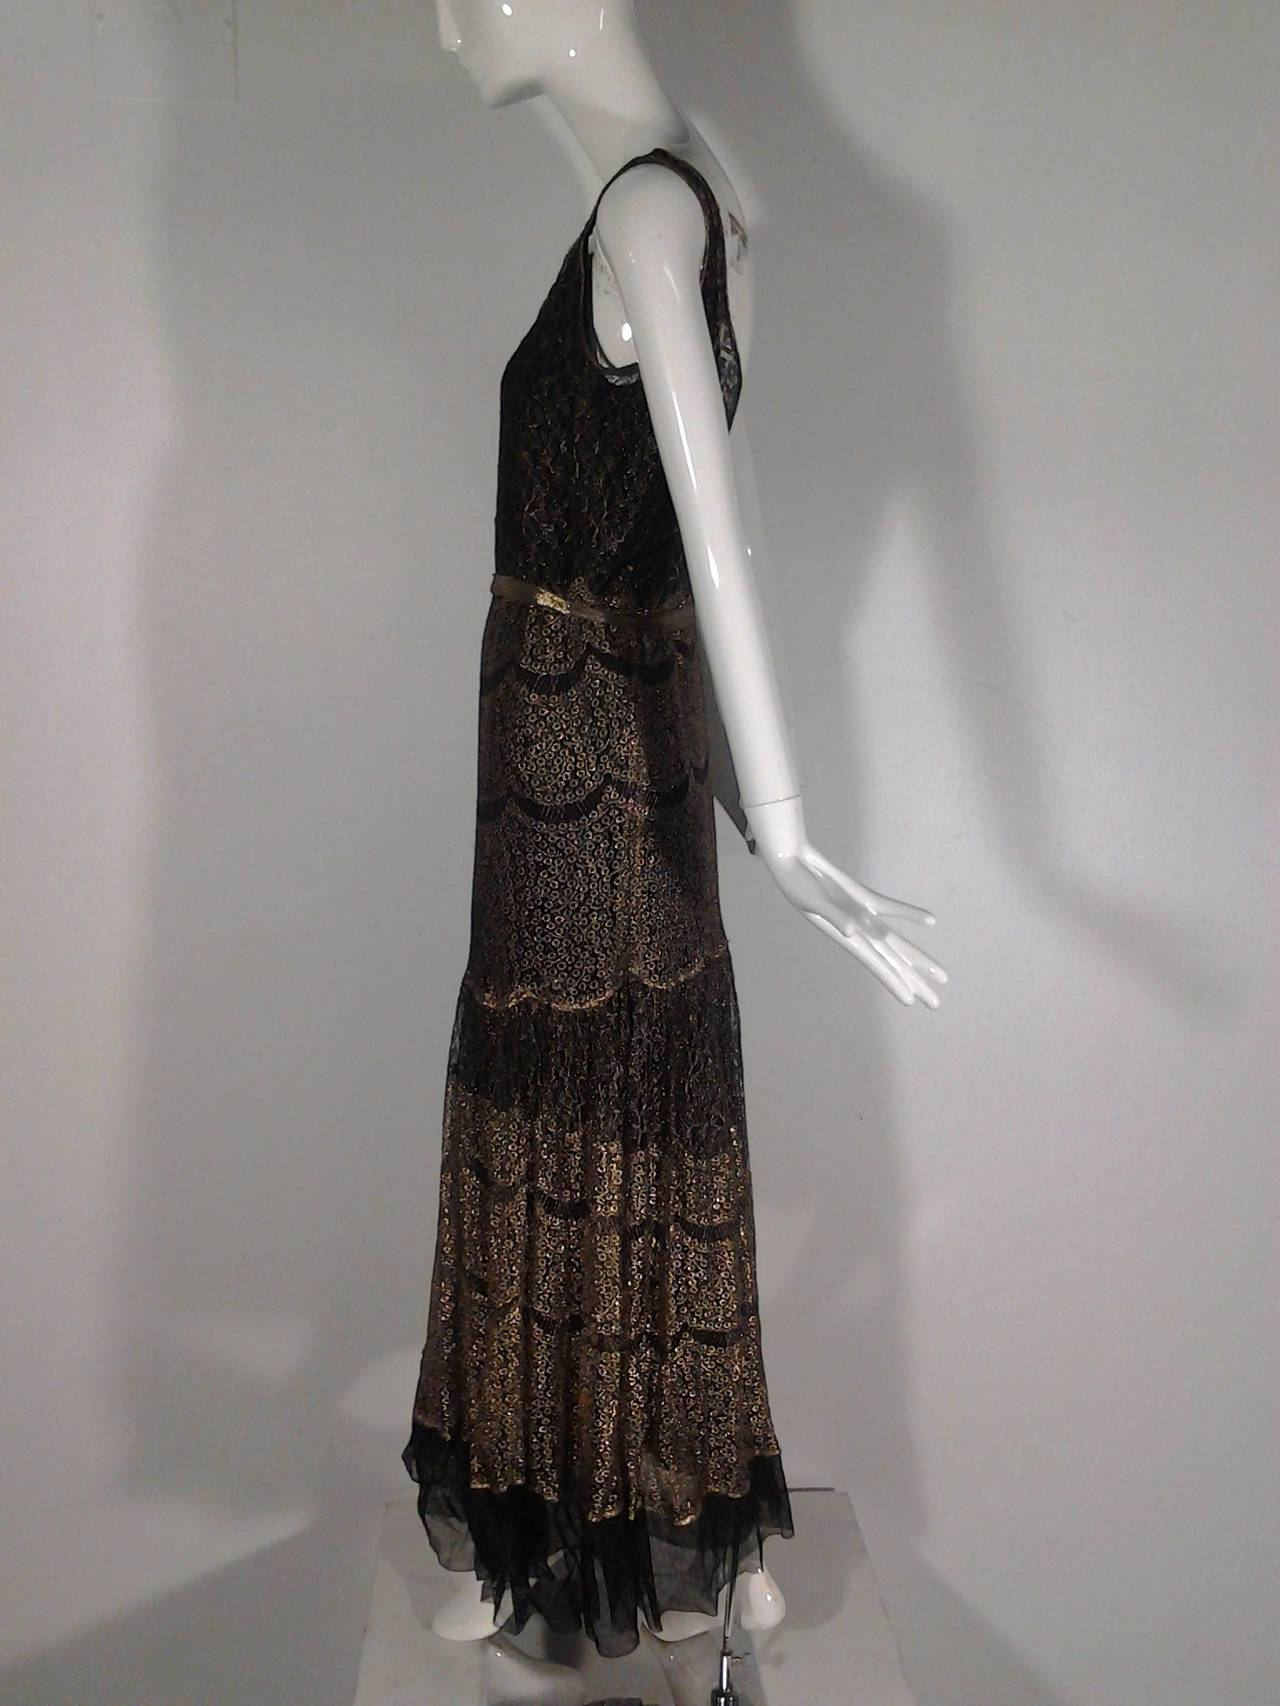 1920s French Evening Gown with Gold Lame and Elaborate Beading 3